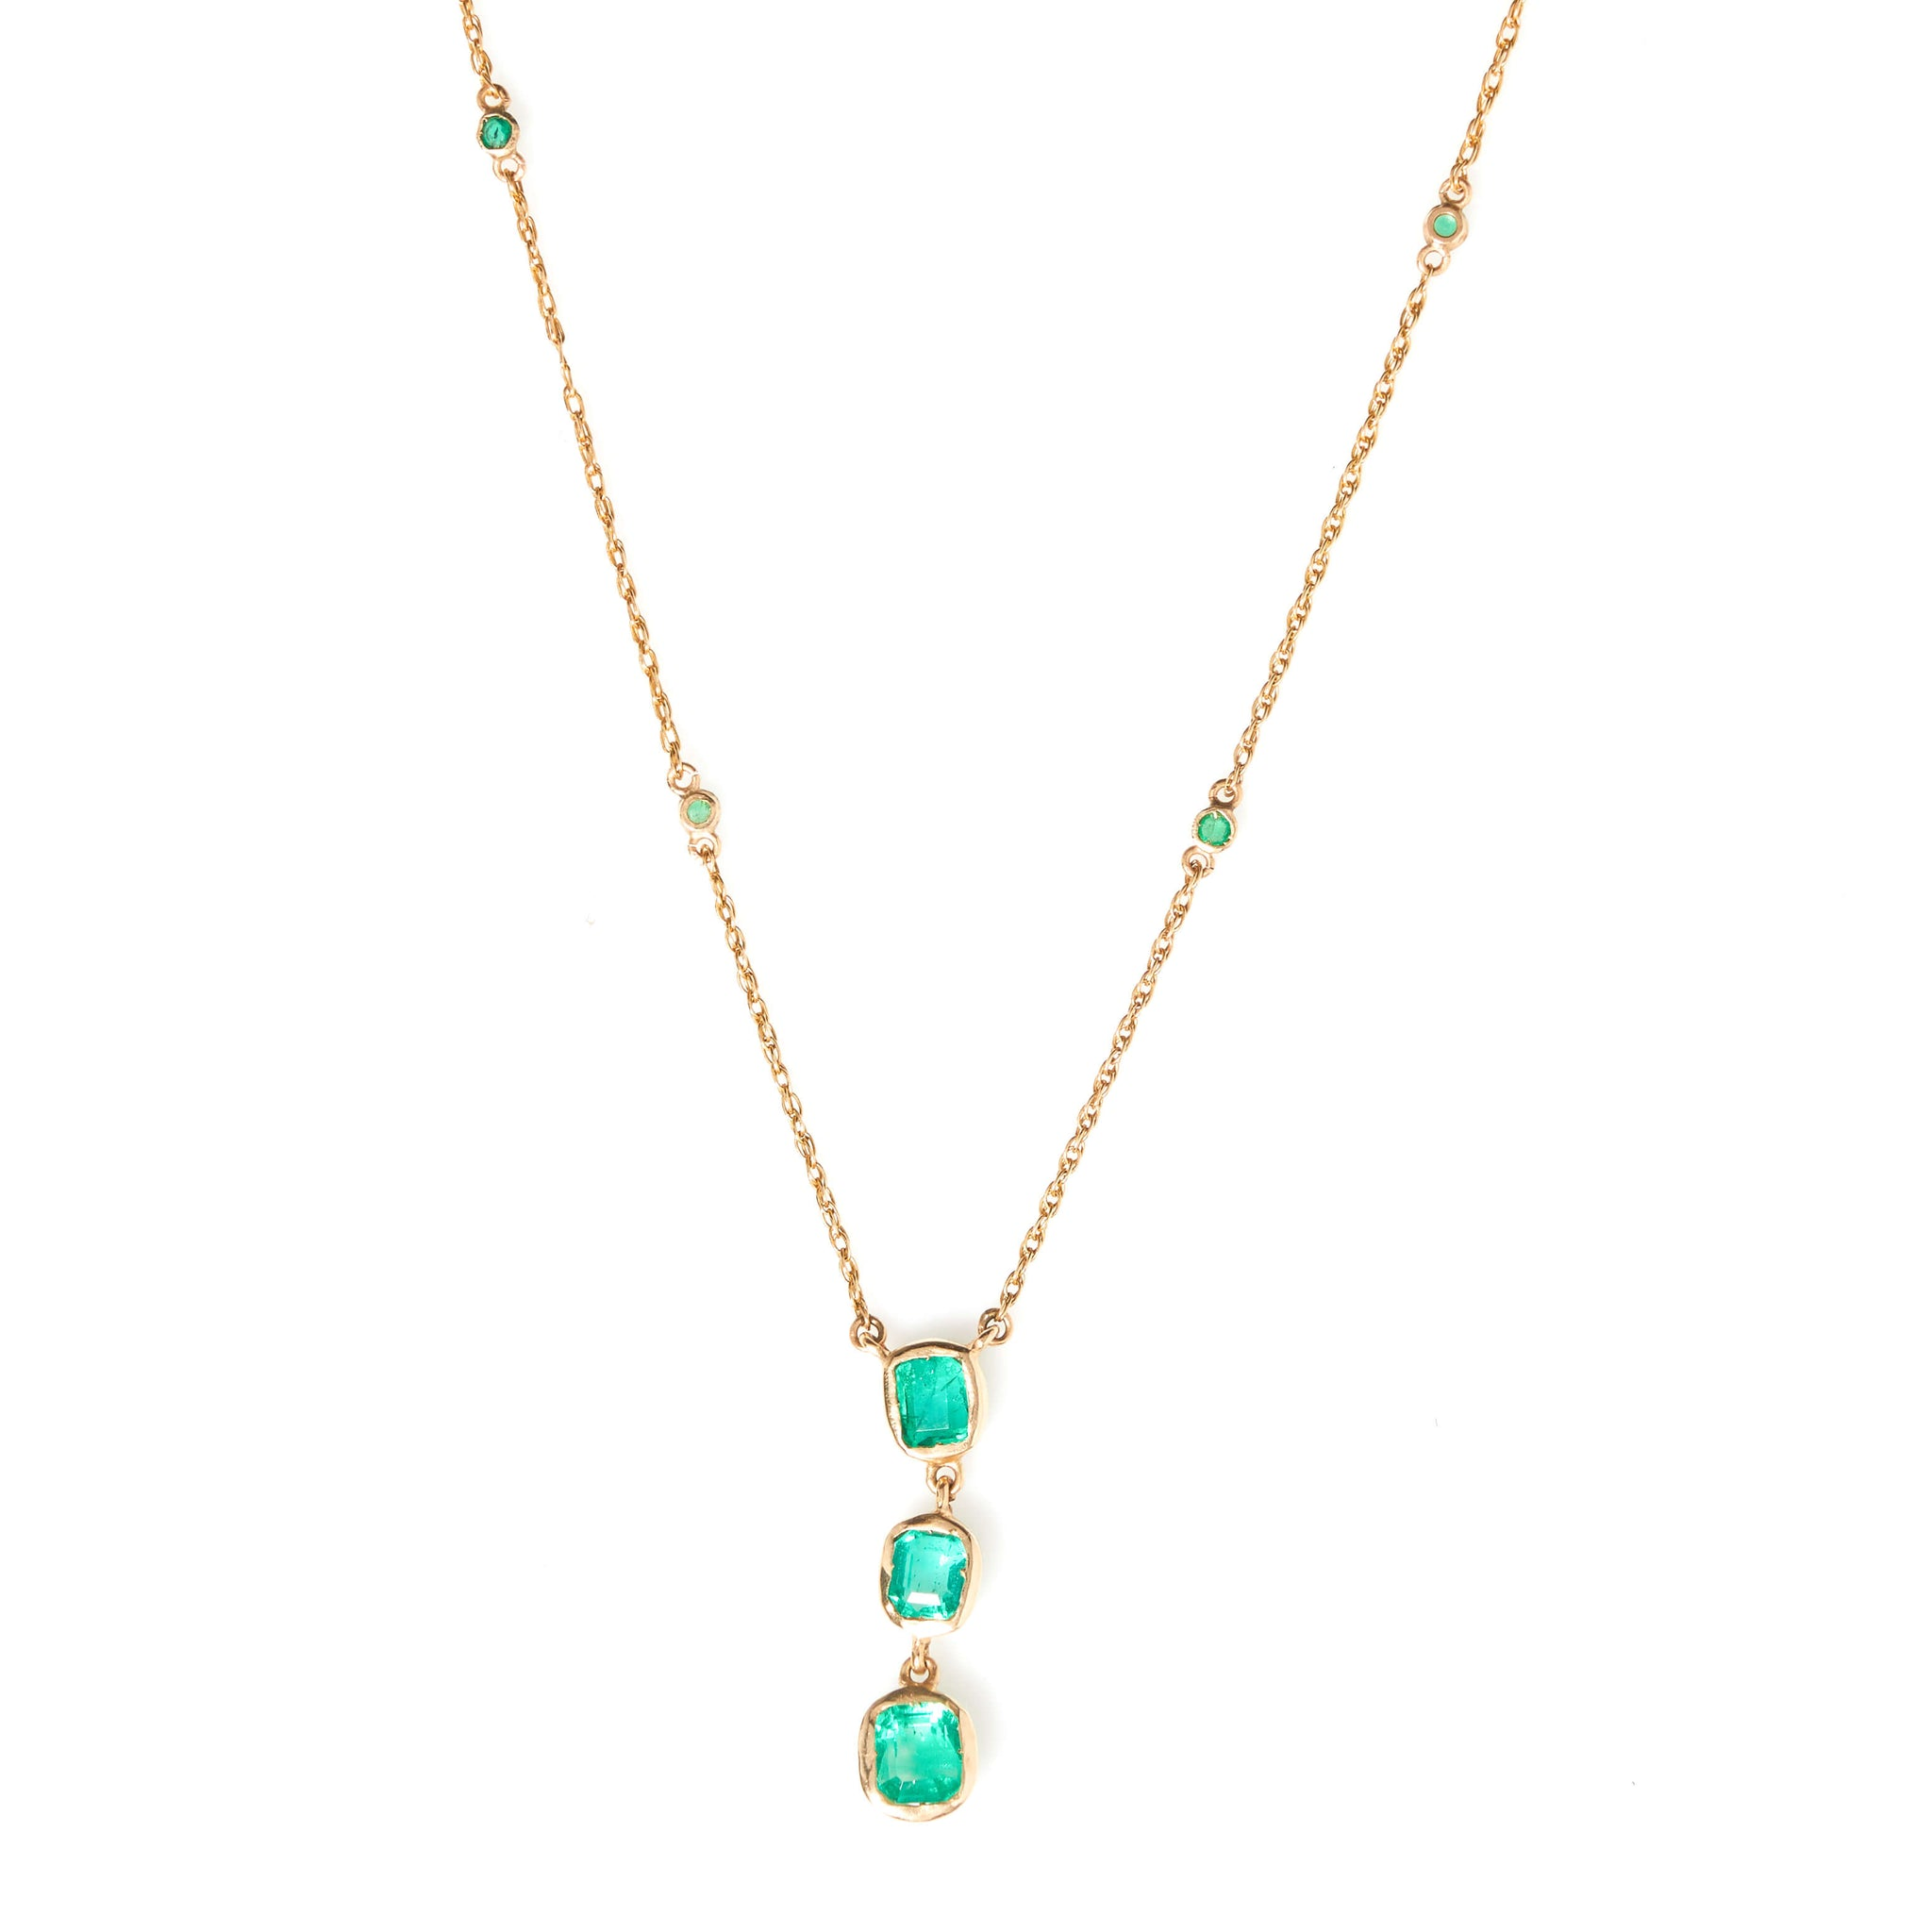 Emeralds in Yellow Gold Necklace - Sindur